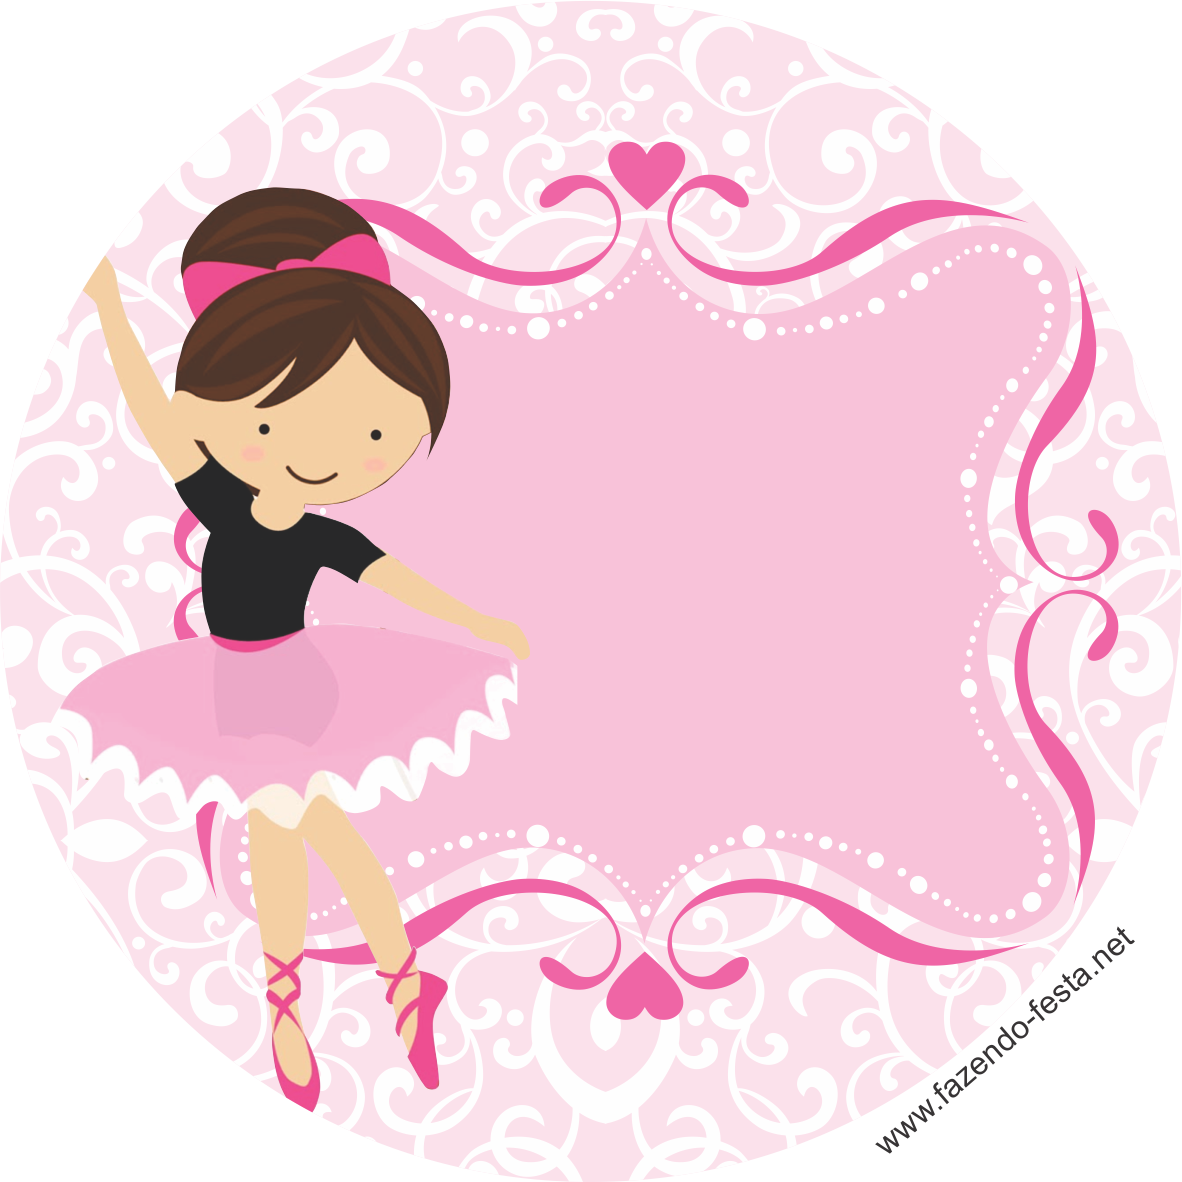 Dance clipart dance recital. Mini kit de ballerina